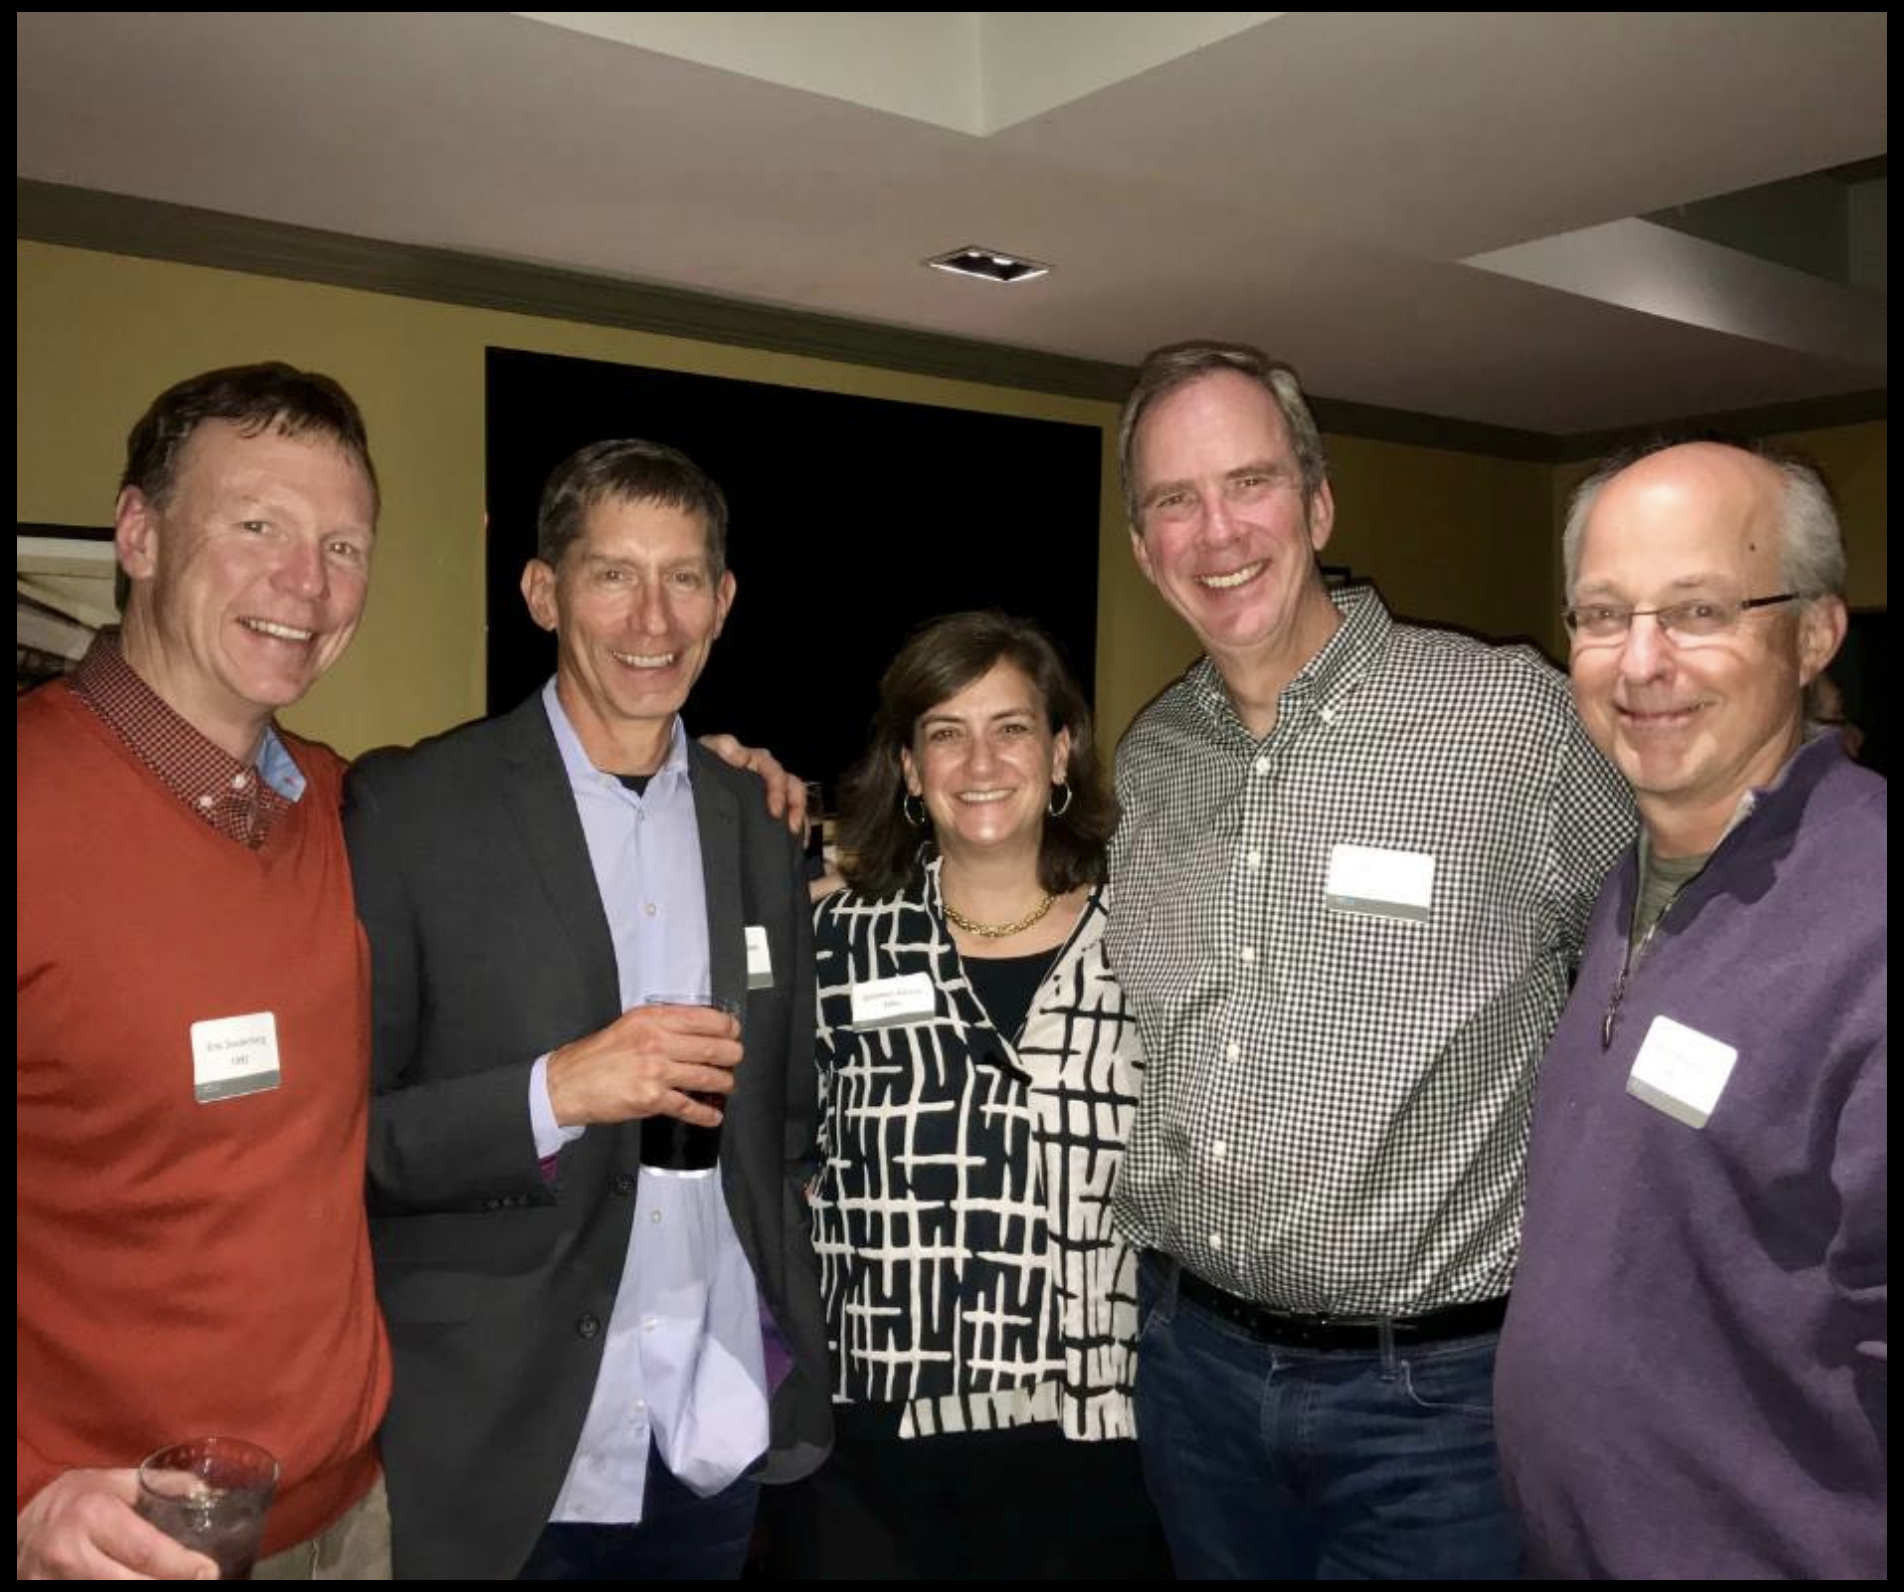 LGO alumni from the class of 1992 catch up during happy hour at the LGO Alumni conference.